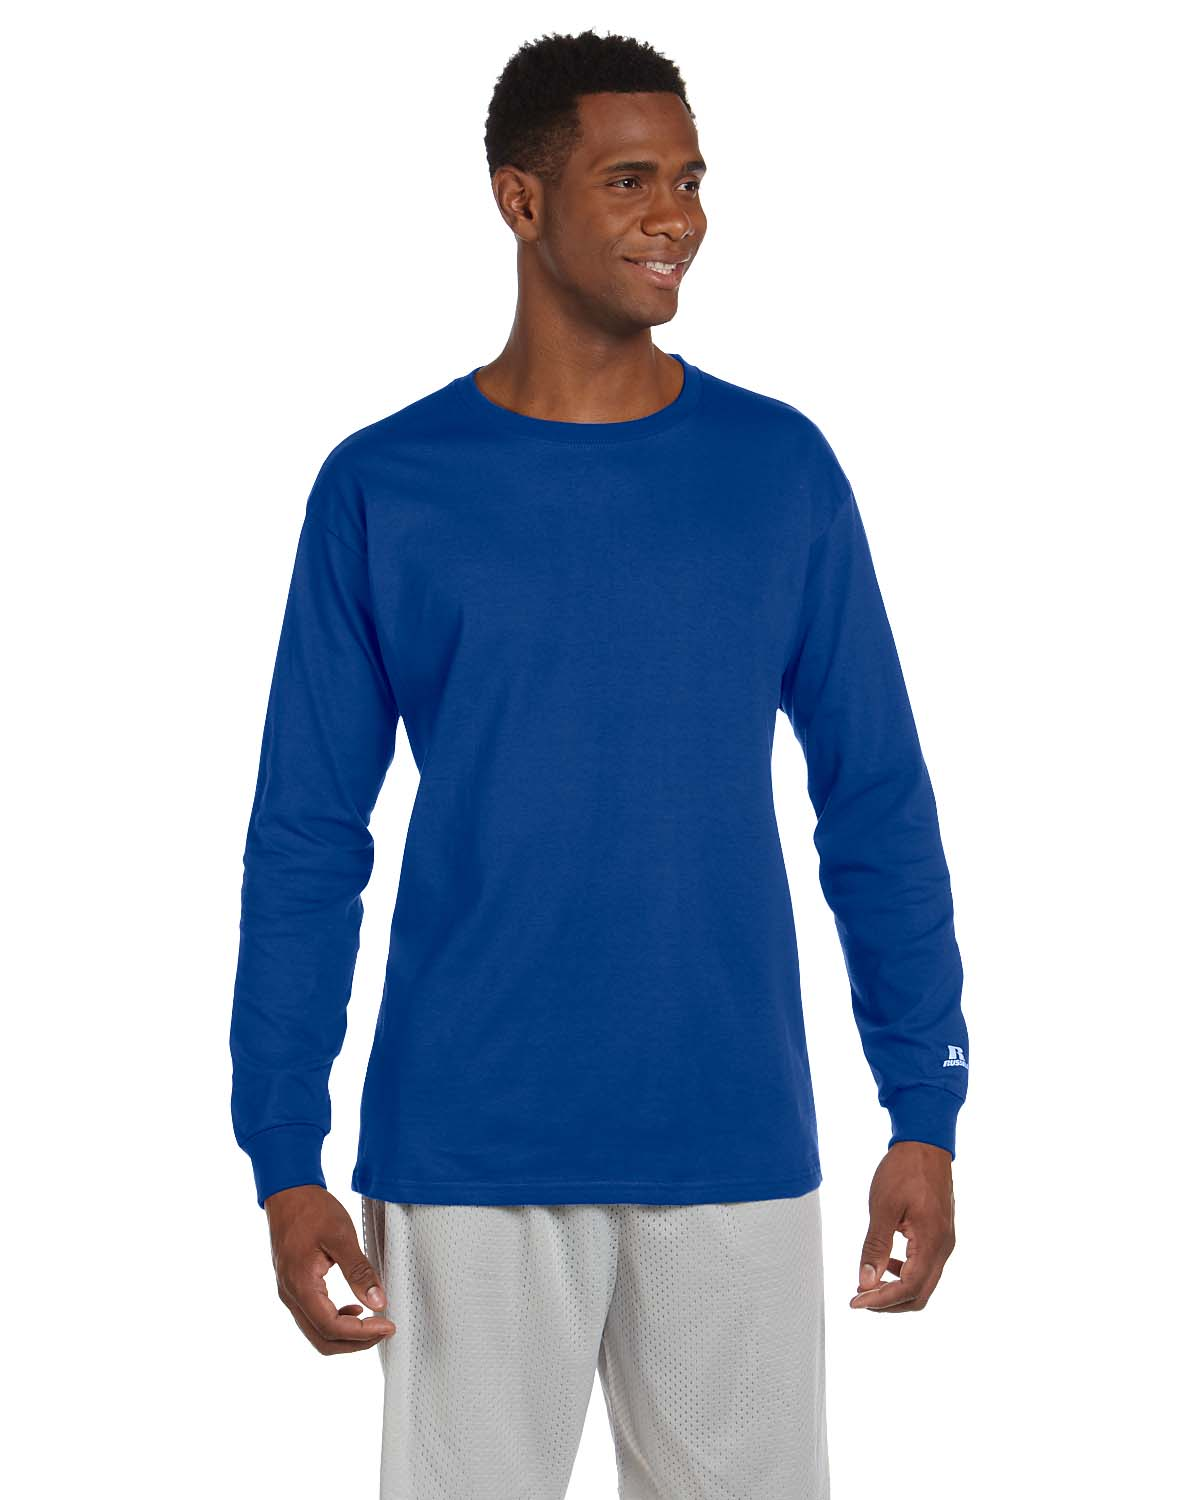 Russell Athletic Cotton Long-Sleeve T-Shirt